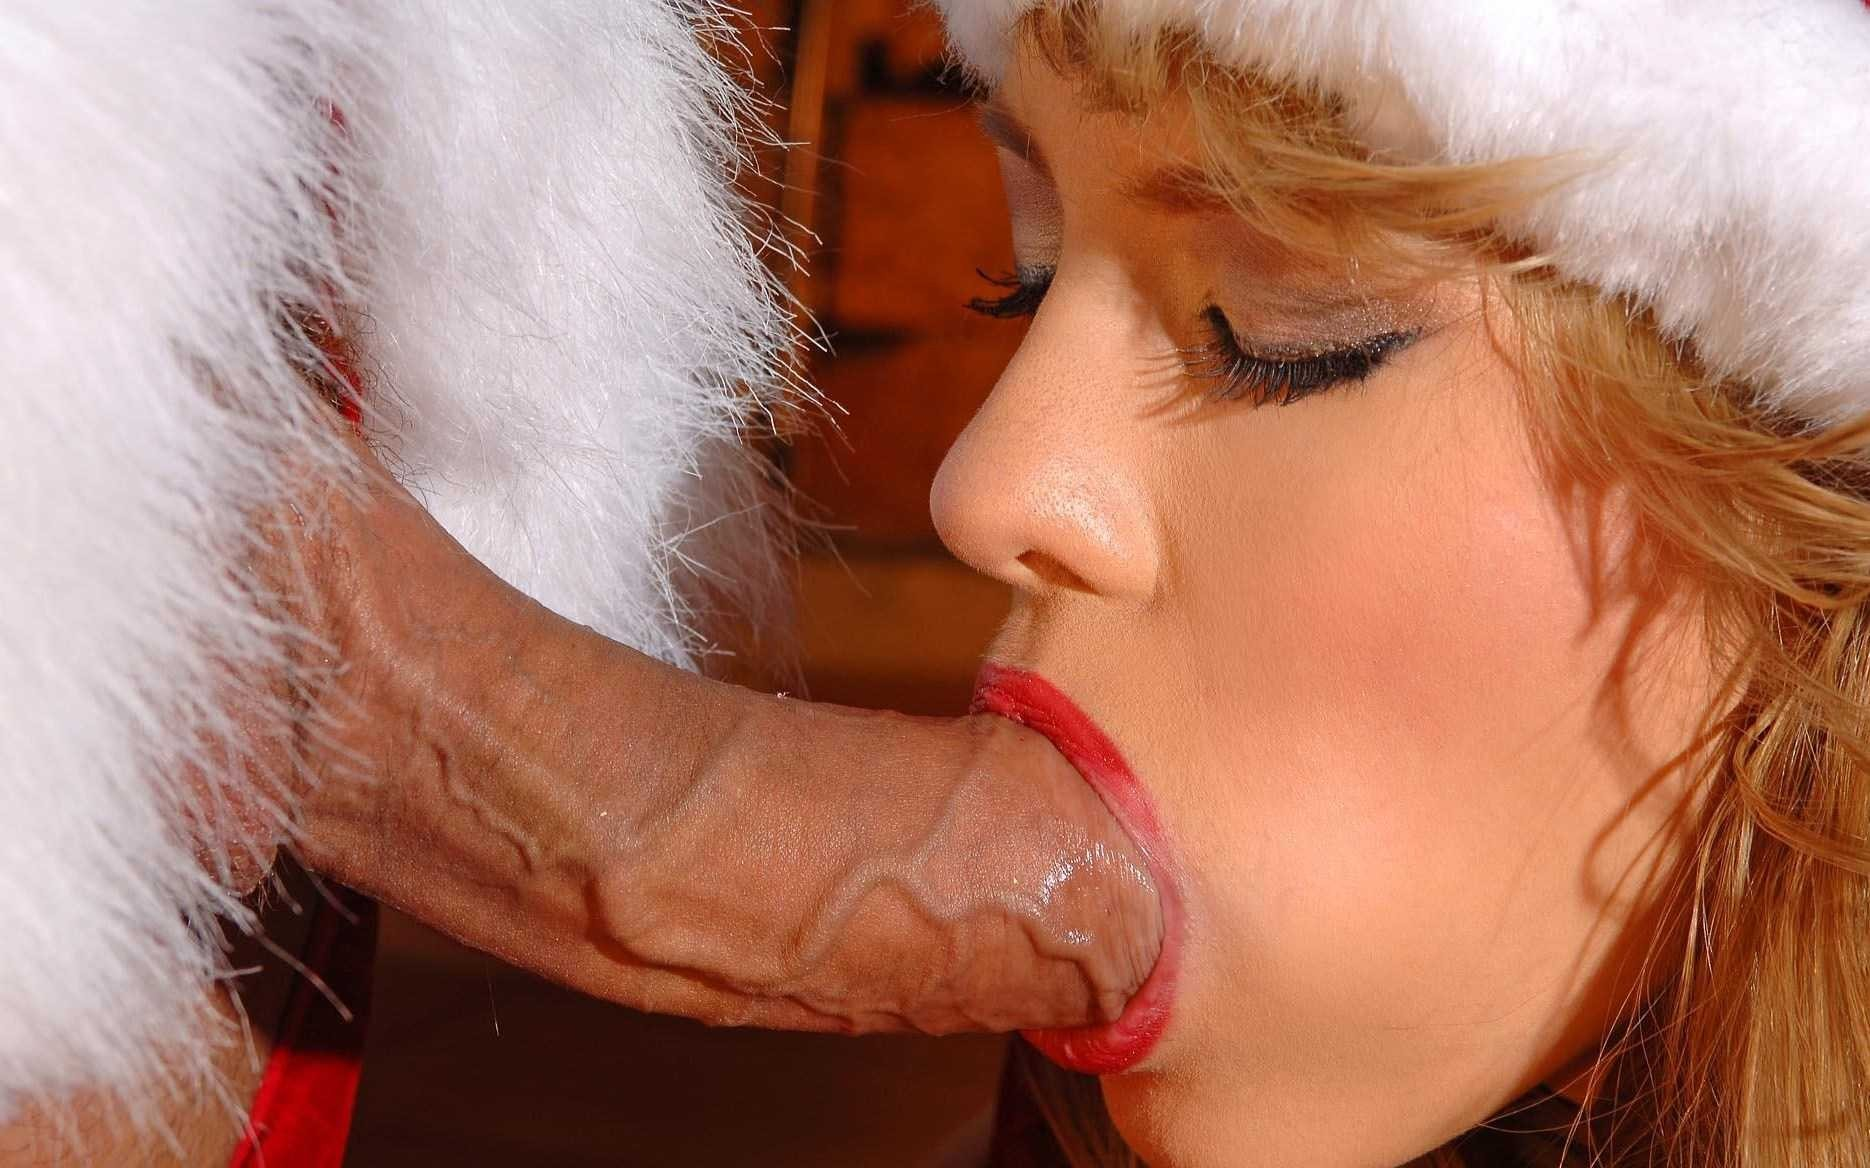 Elf doing blowjob naked clip